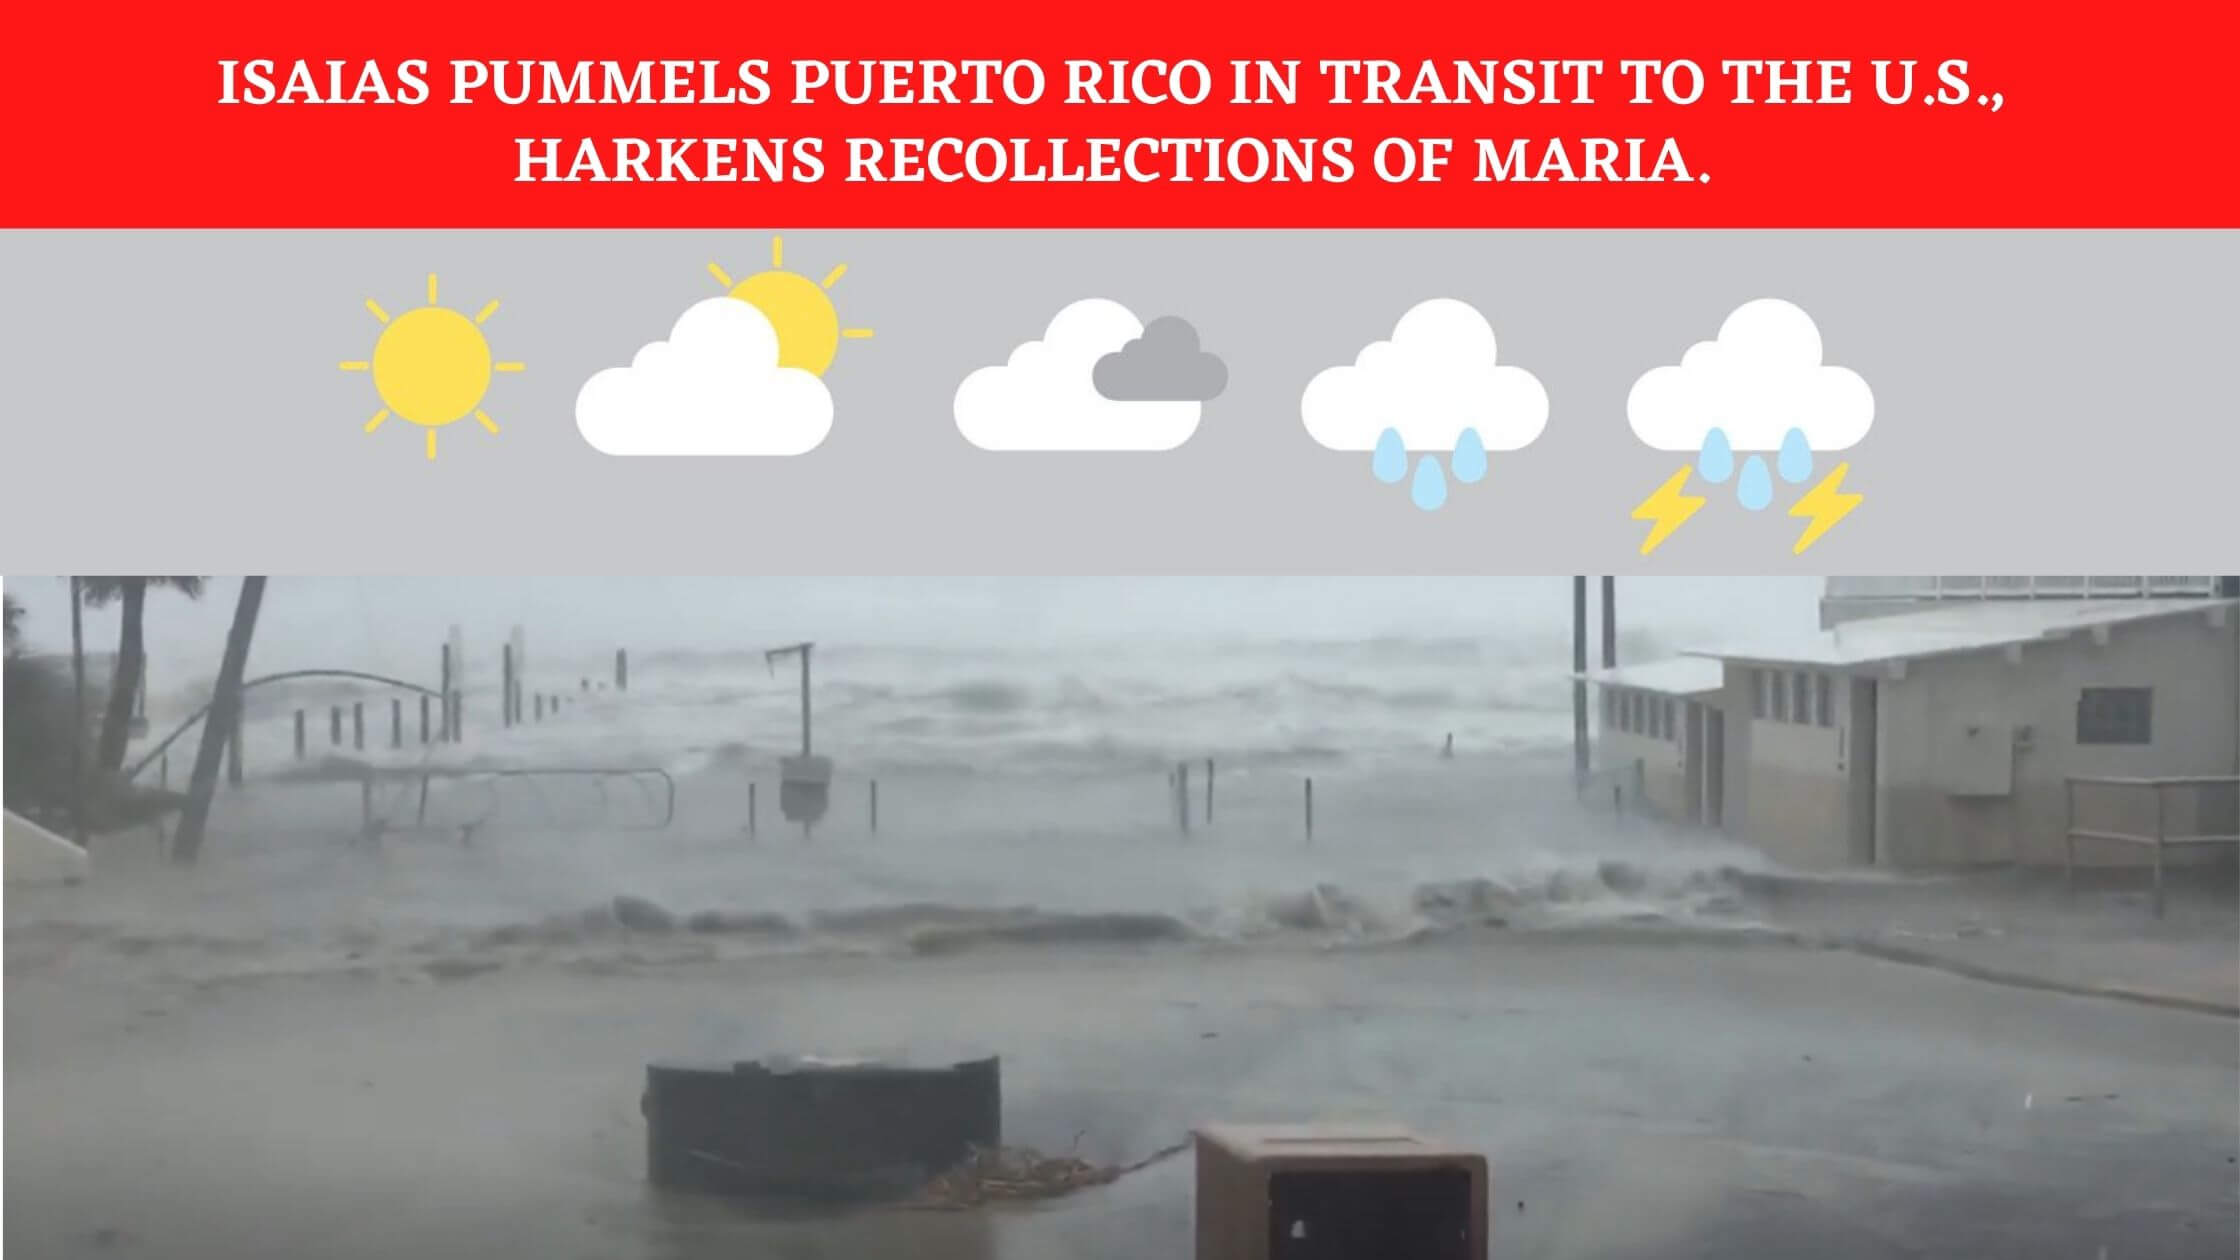 Isaias pummels Puerto Rico in transit to the U.S., harkens recollections of Maria